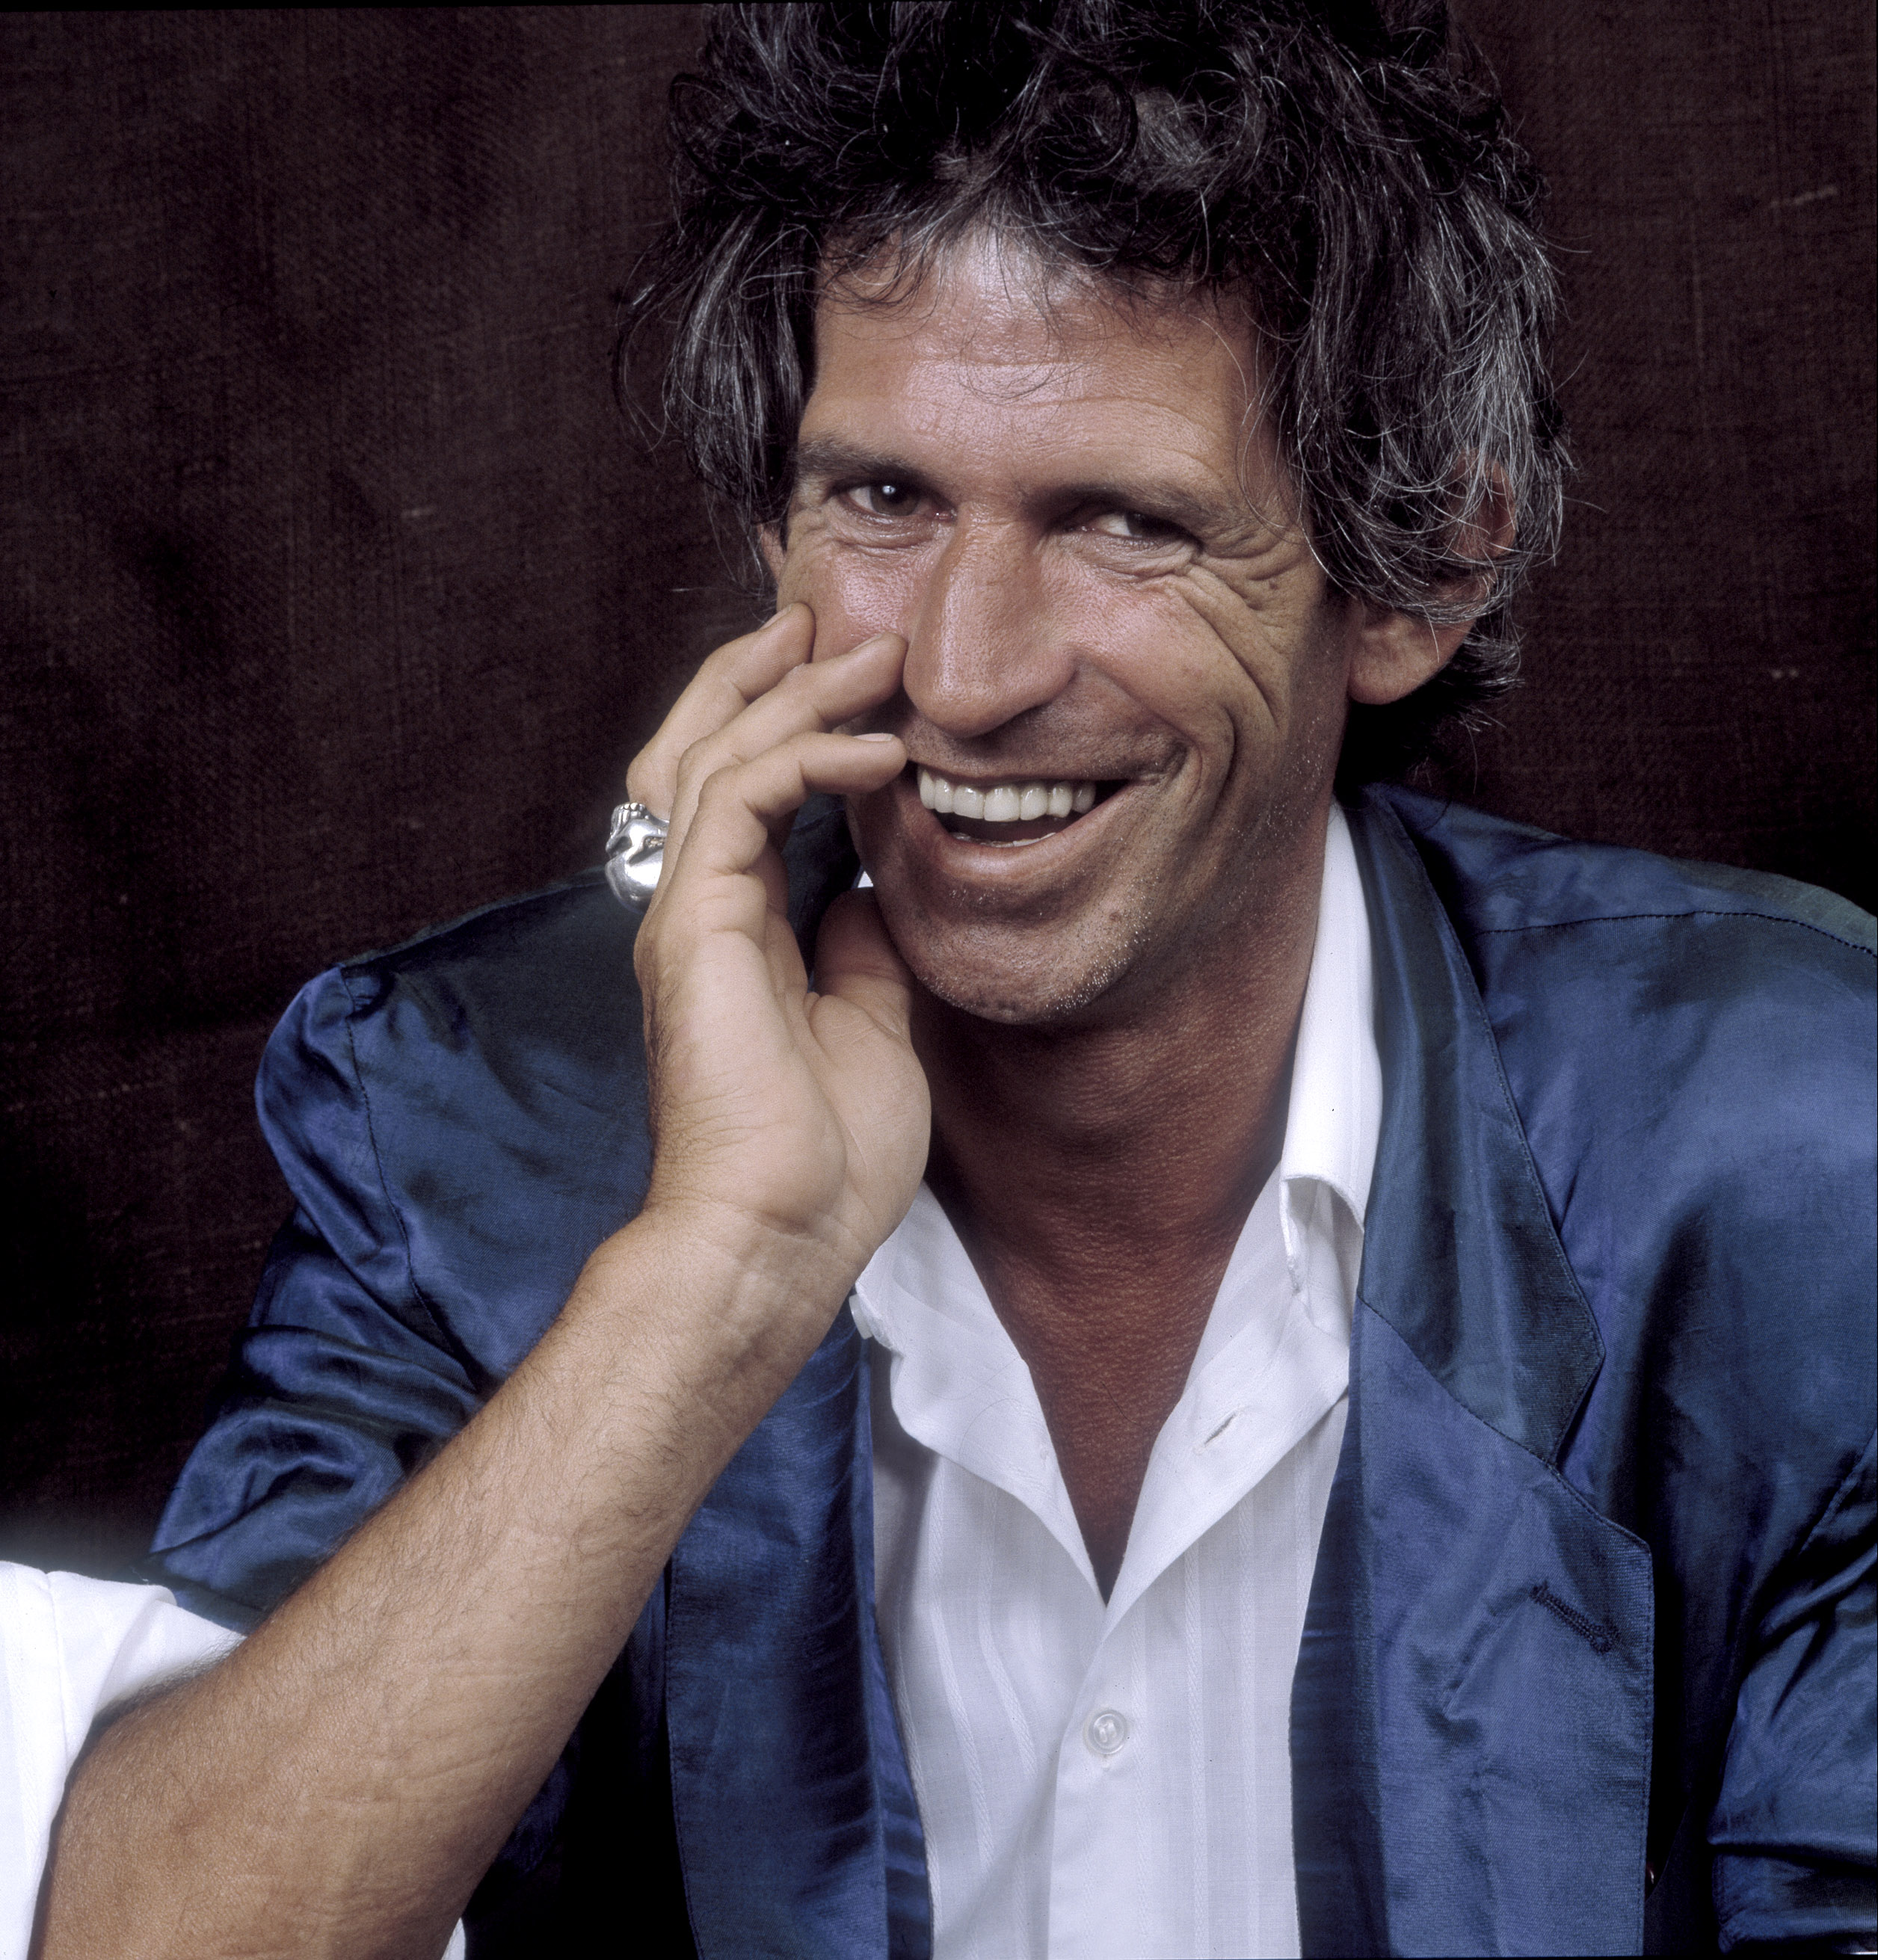 Keith Richards Through The Years [PHOTO GALLERY] - JACK 96.9